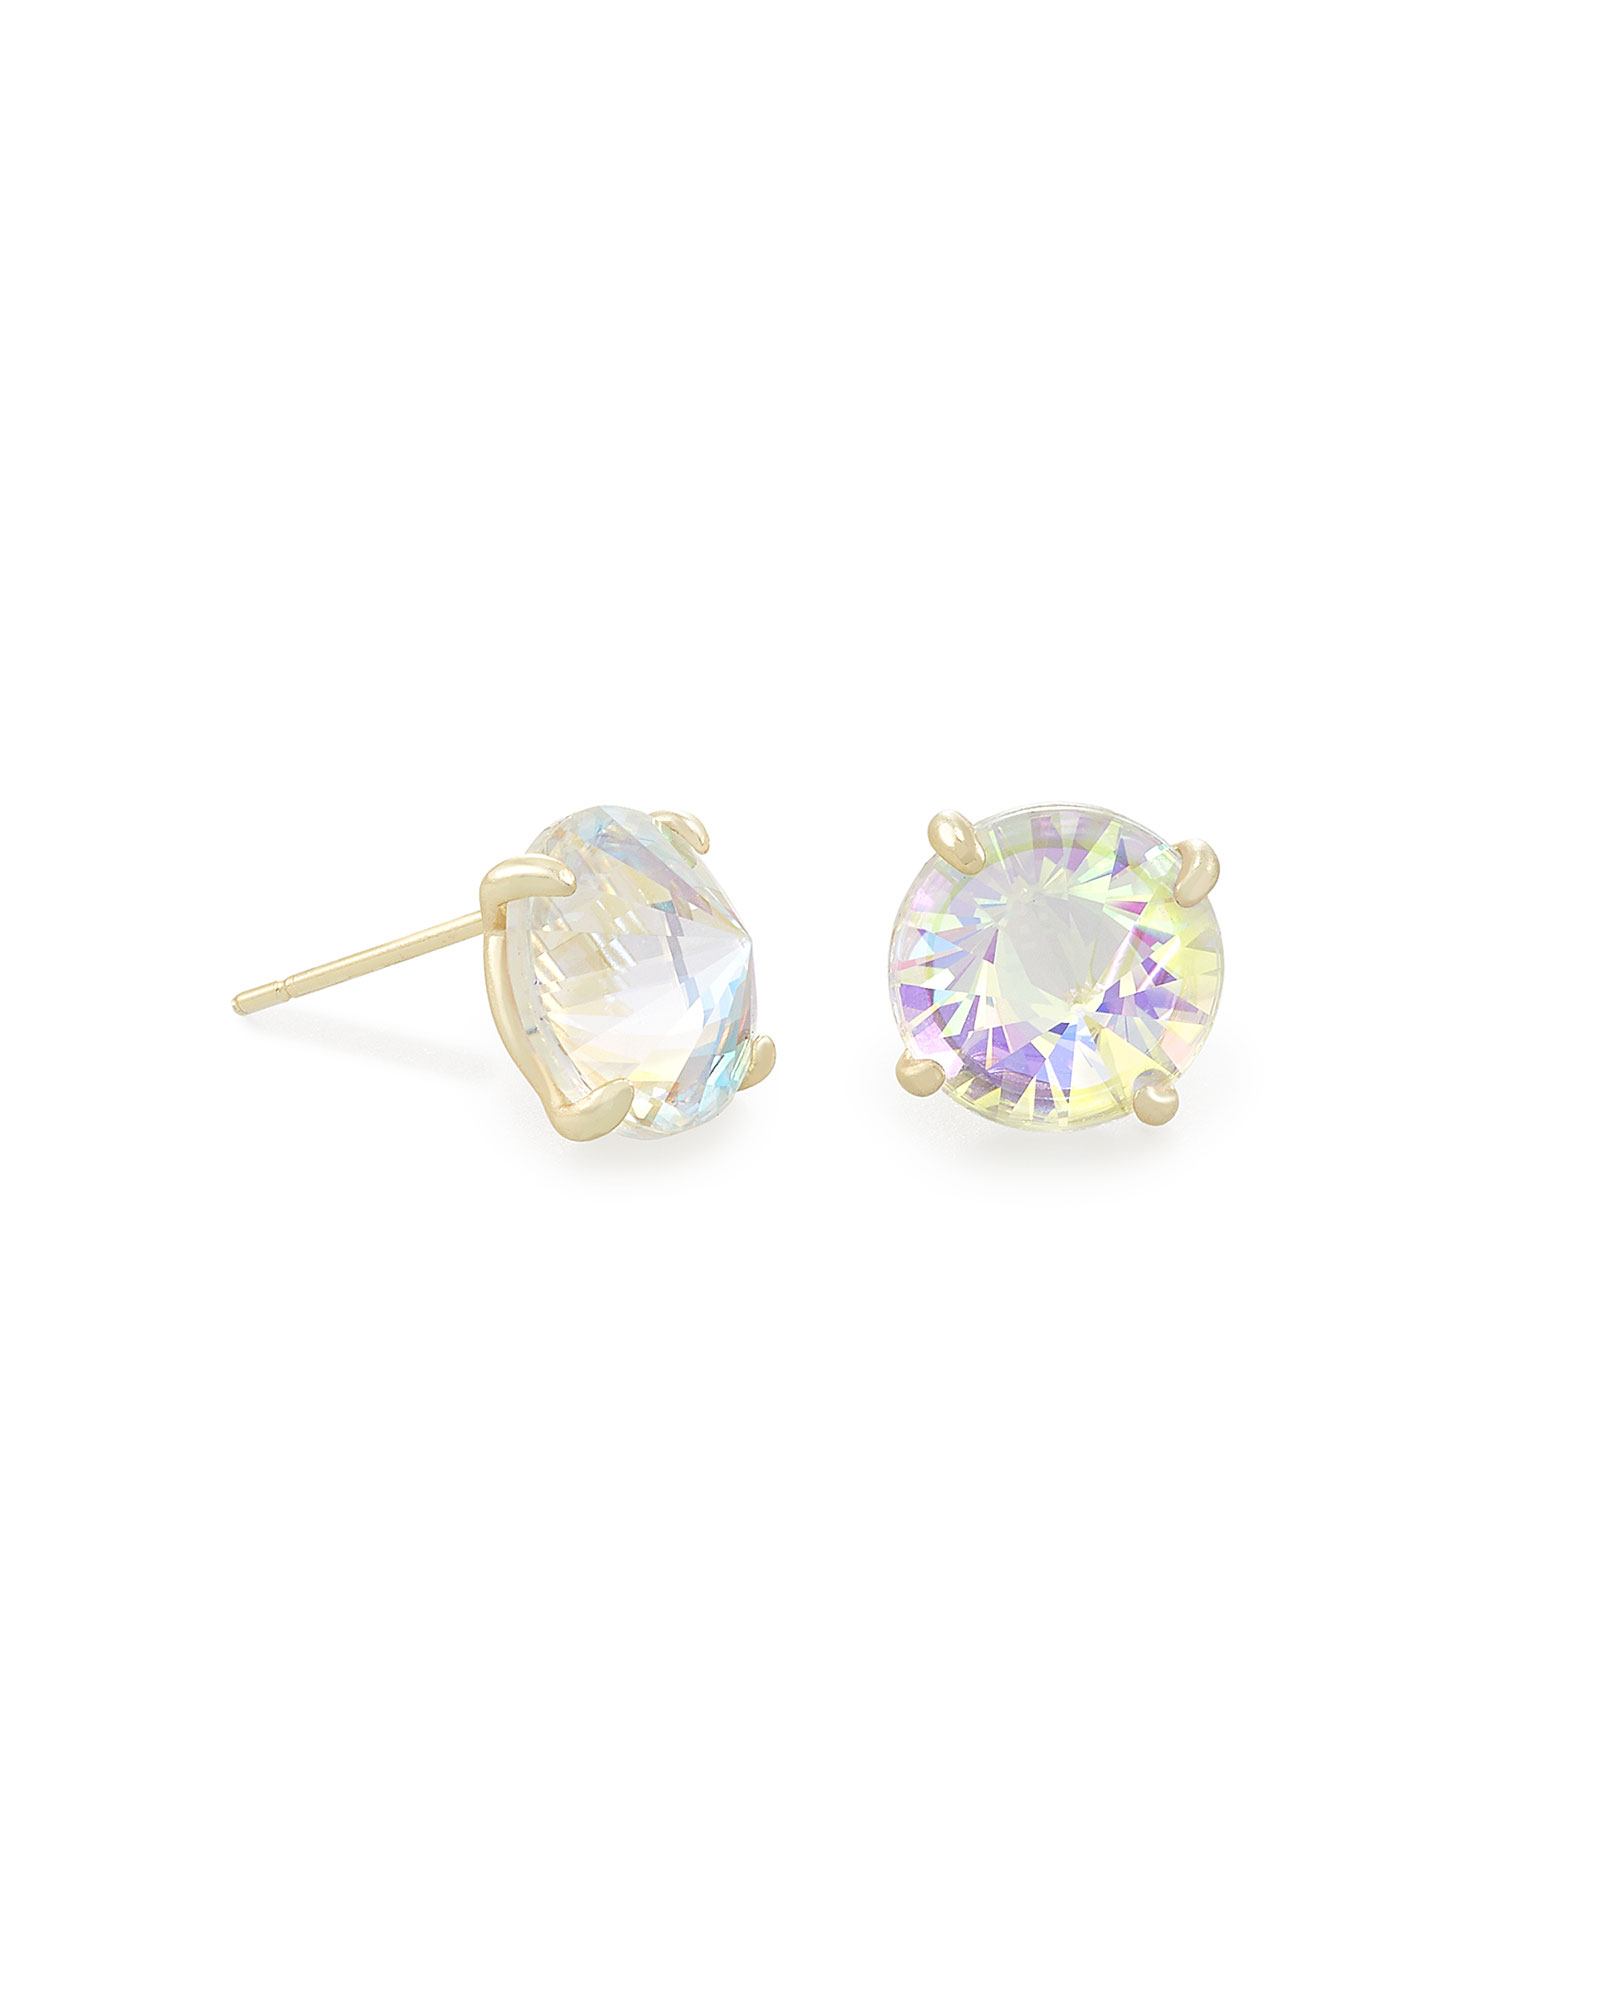 Jolie Gold Stud Earrings in Dichroic Glass